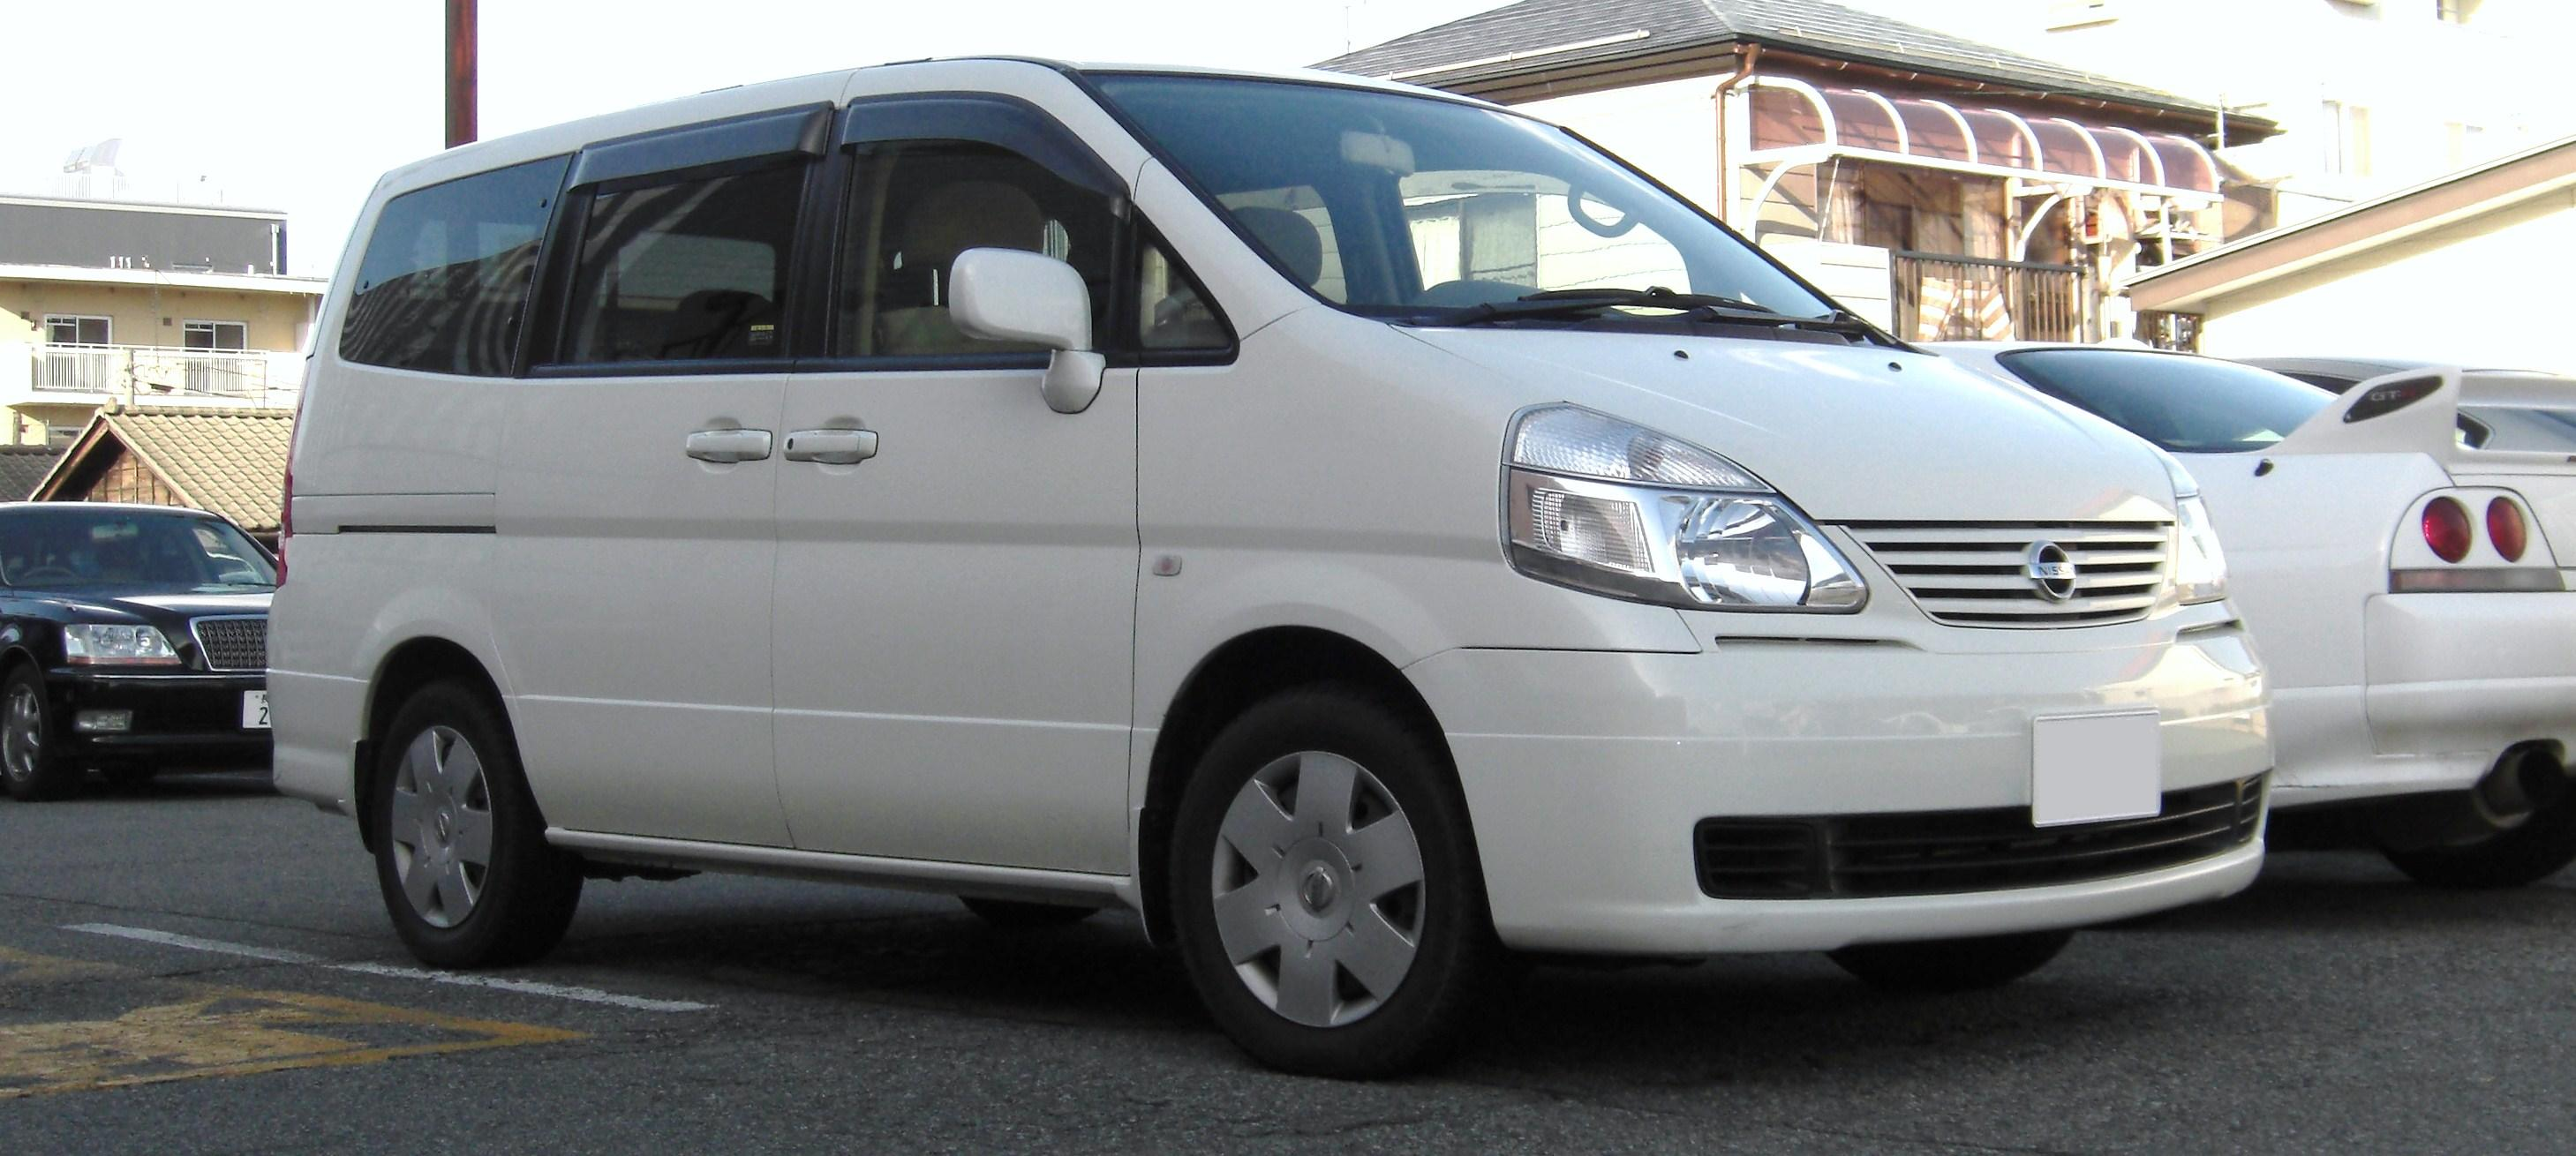 Nissan Altima Wiki >> 2001 Nissan Serena (c24) – pictures, information and specs ...